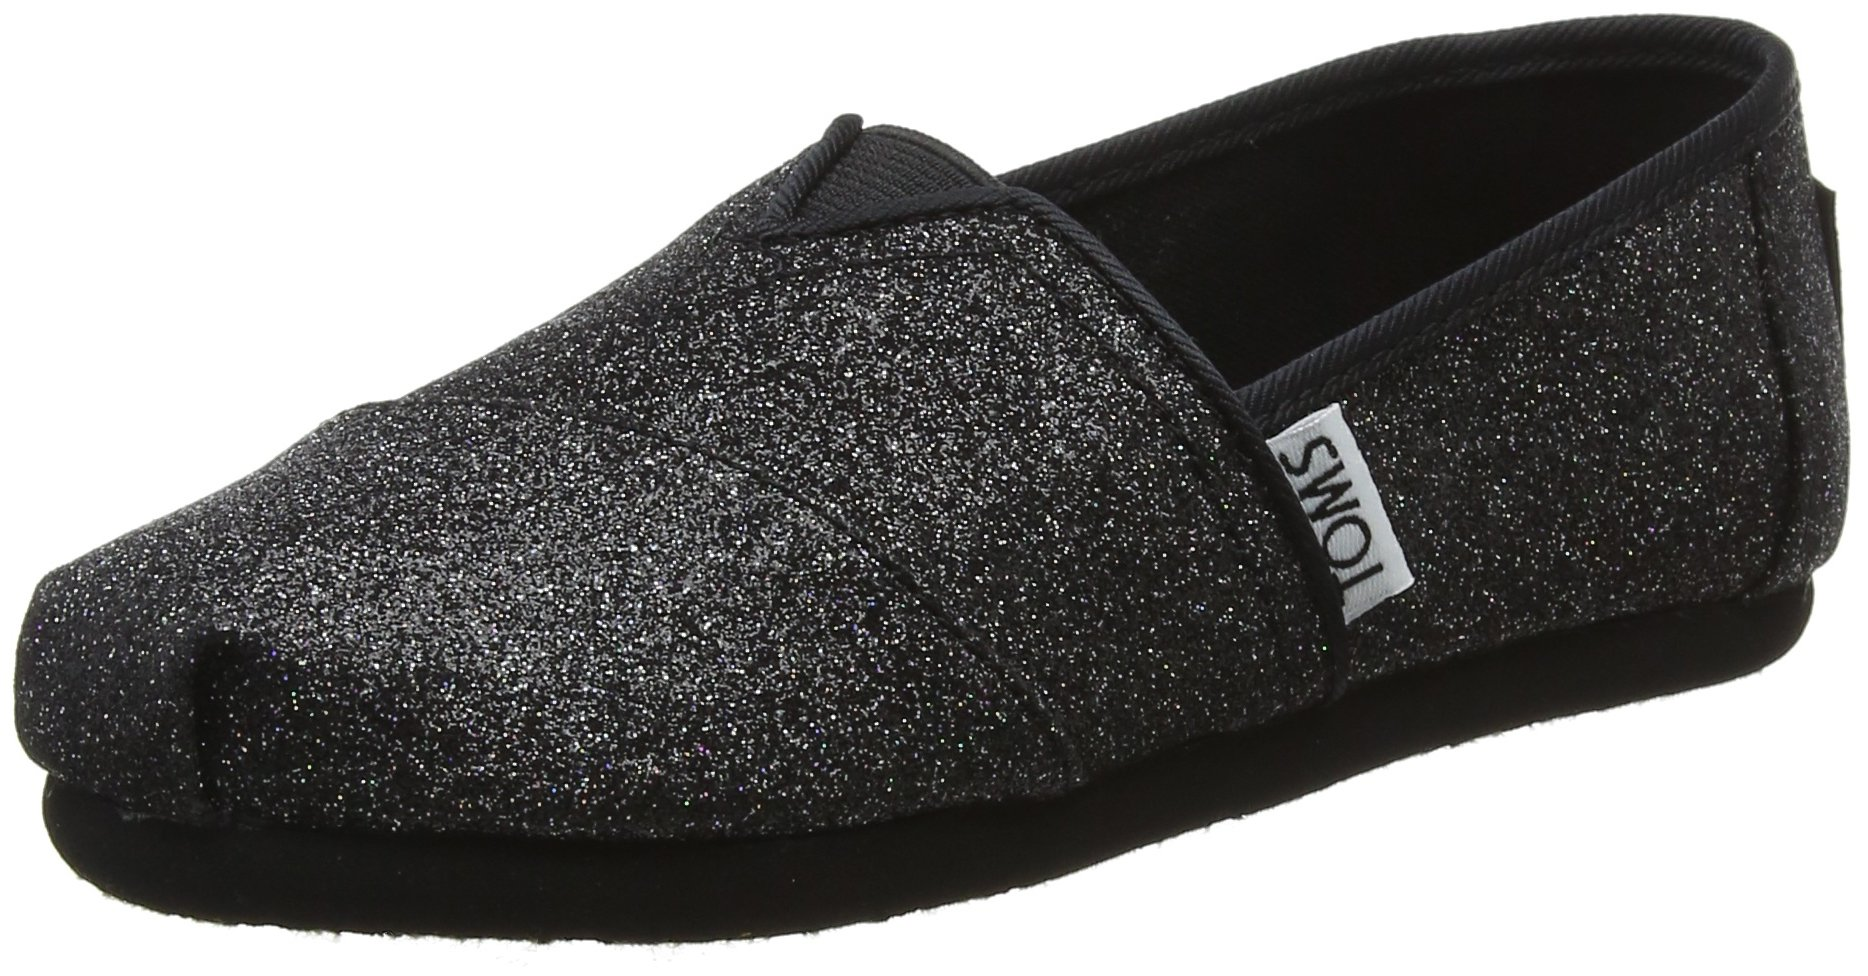 TOMS Kids Girl's Alpargata (Little Kid/Big Kid) Black Iridescent Glimmer 12.5 M US Little Kid